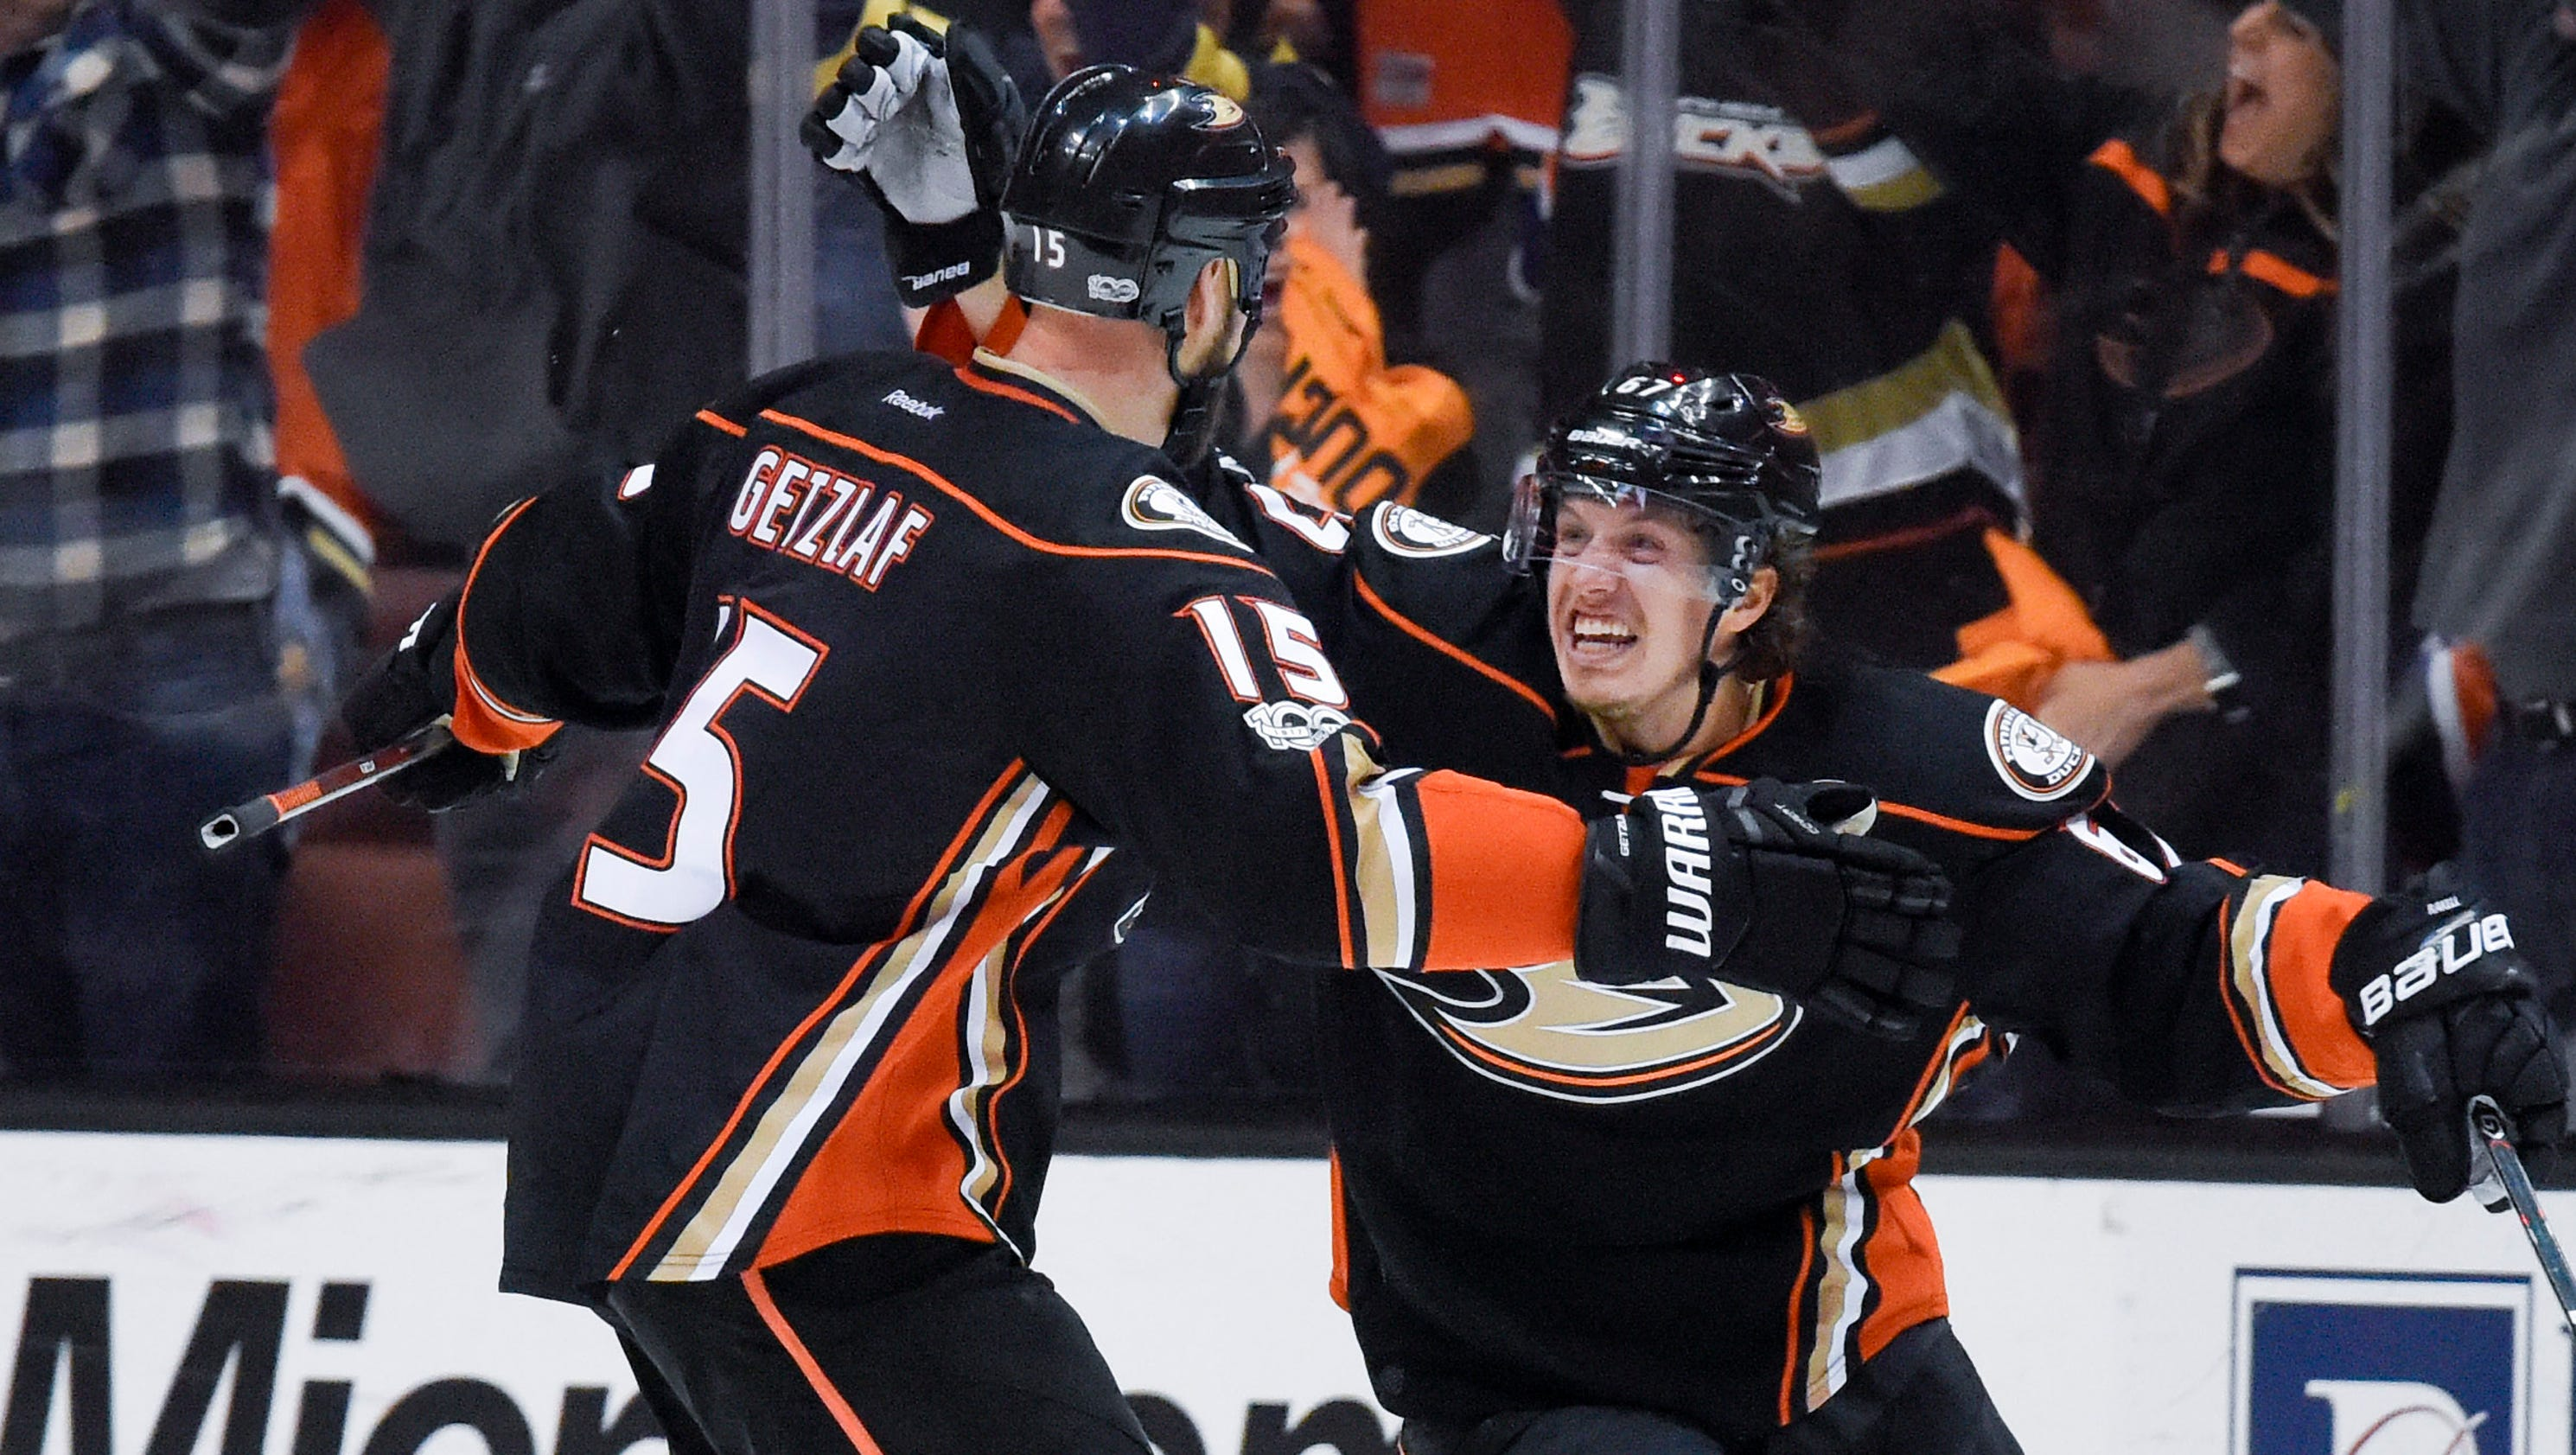 636301230919078883-usp-nhl--stanley-cup-playoffs-edmonton-oilers-at-a